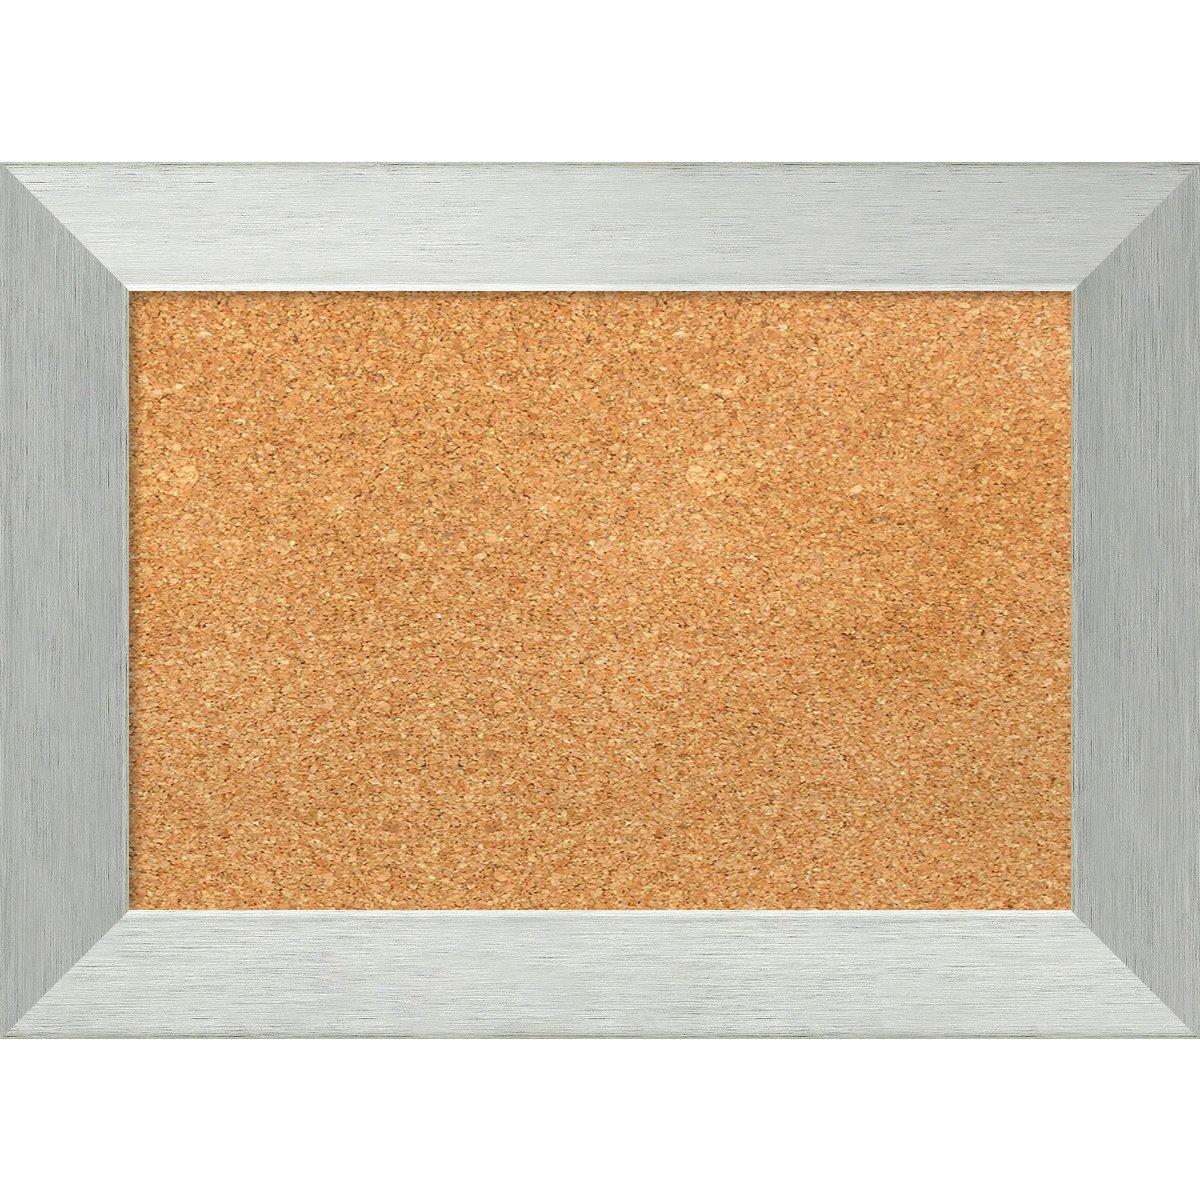 Amanti Art Small, Outer Size 22 x 16 Natural Cork Brushed Sterling Silver Framed Bulletin Boards, 18x12